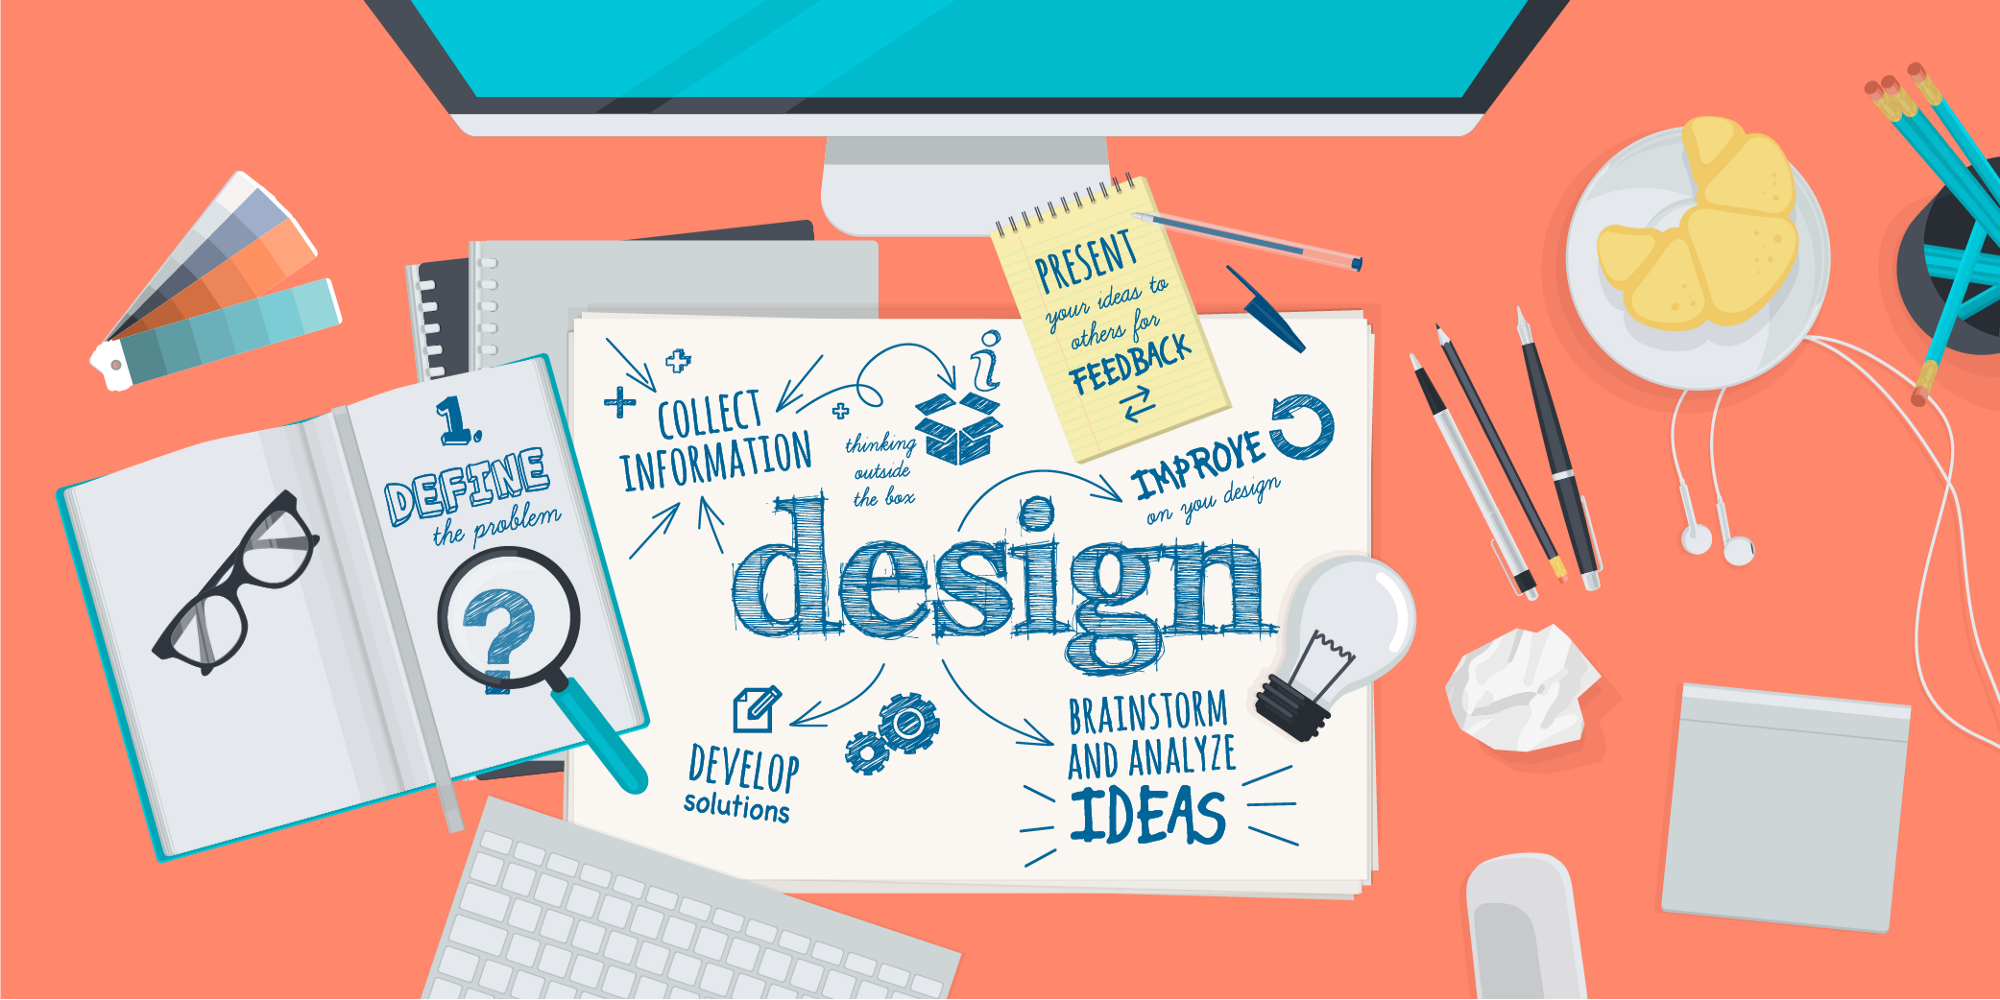 3 principles that all fields of design have in common